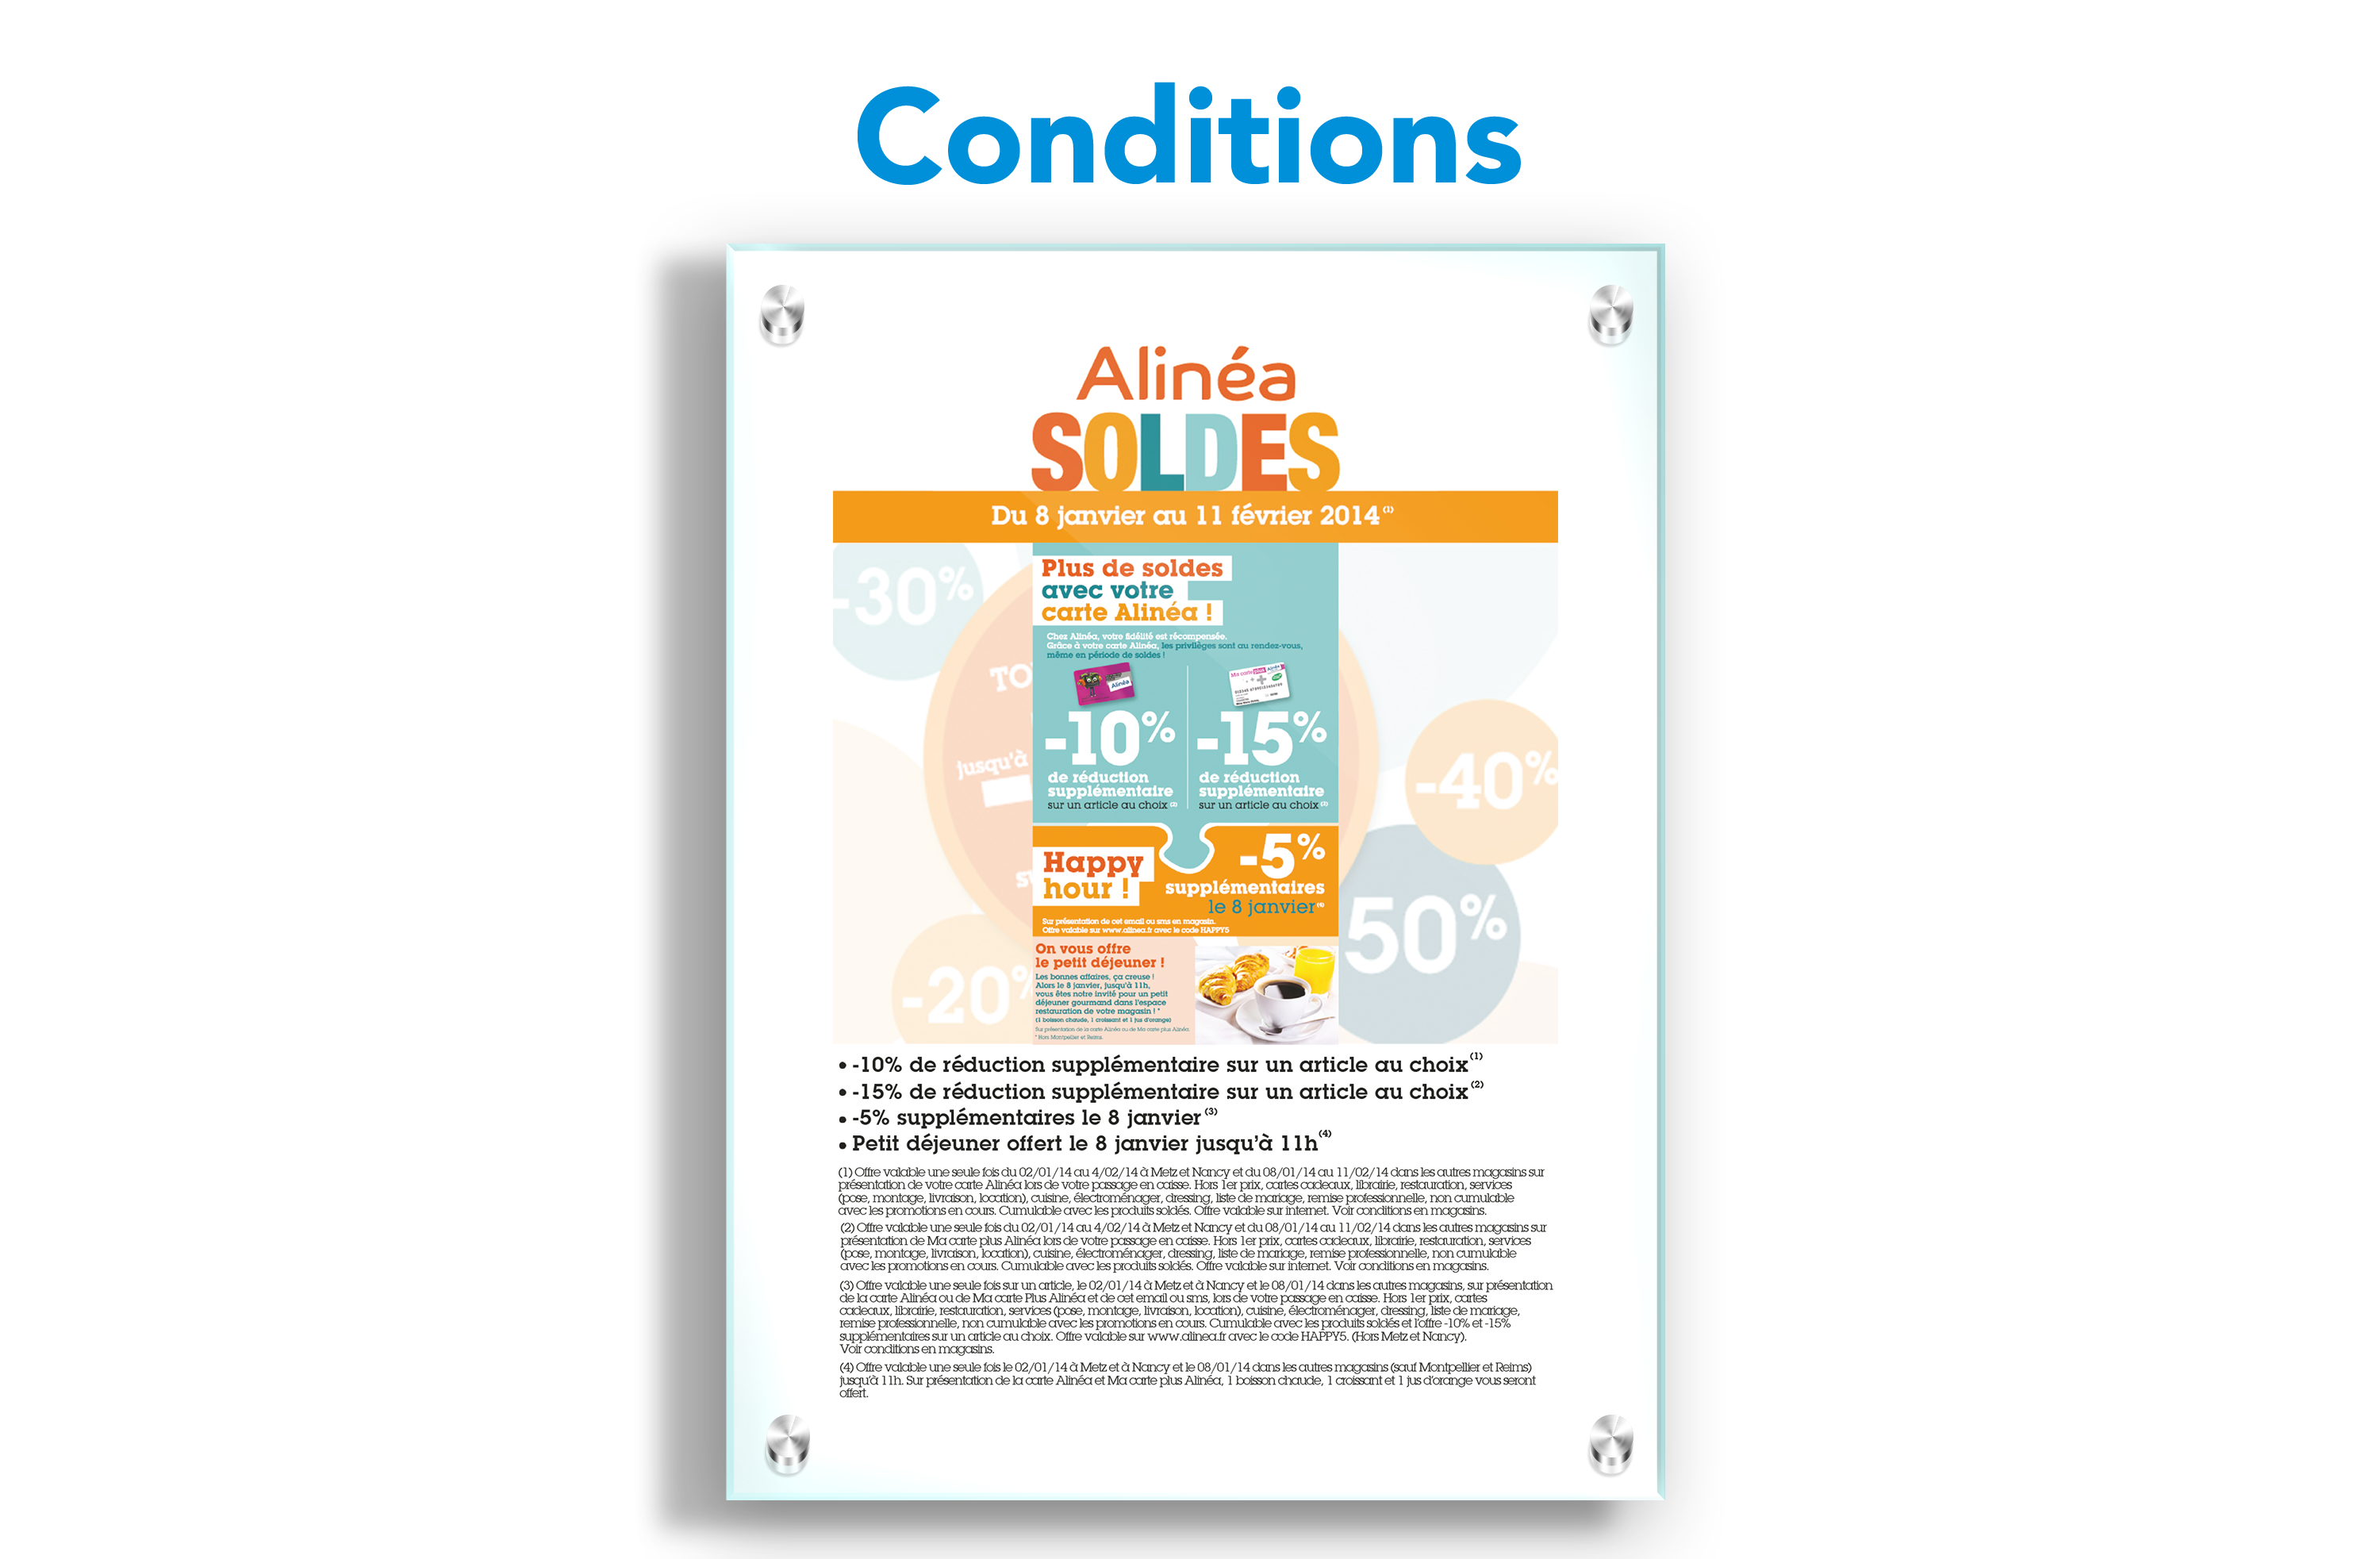 Affichages des conditions